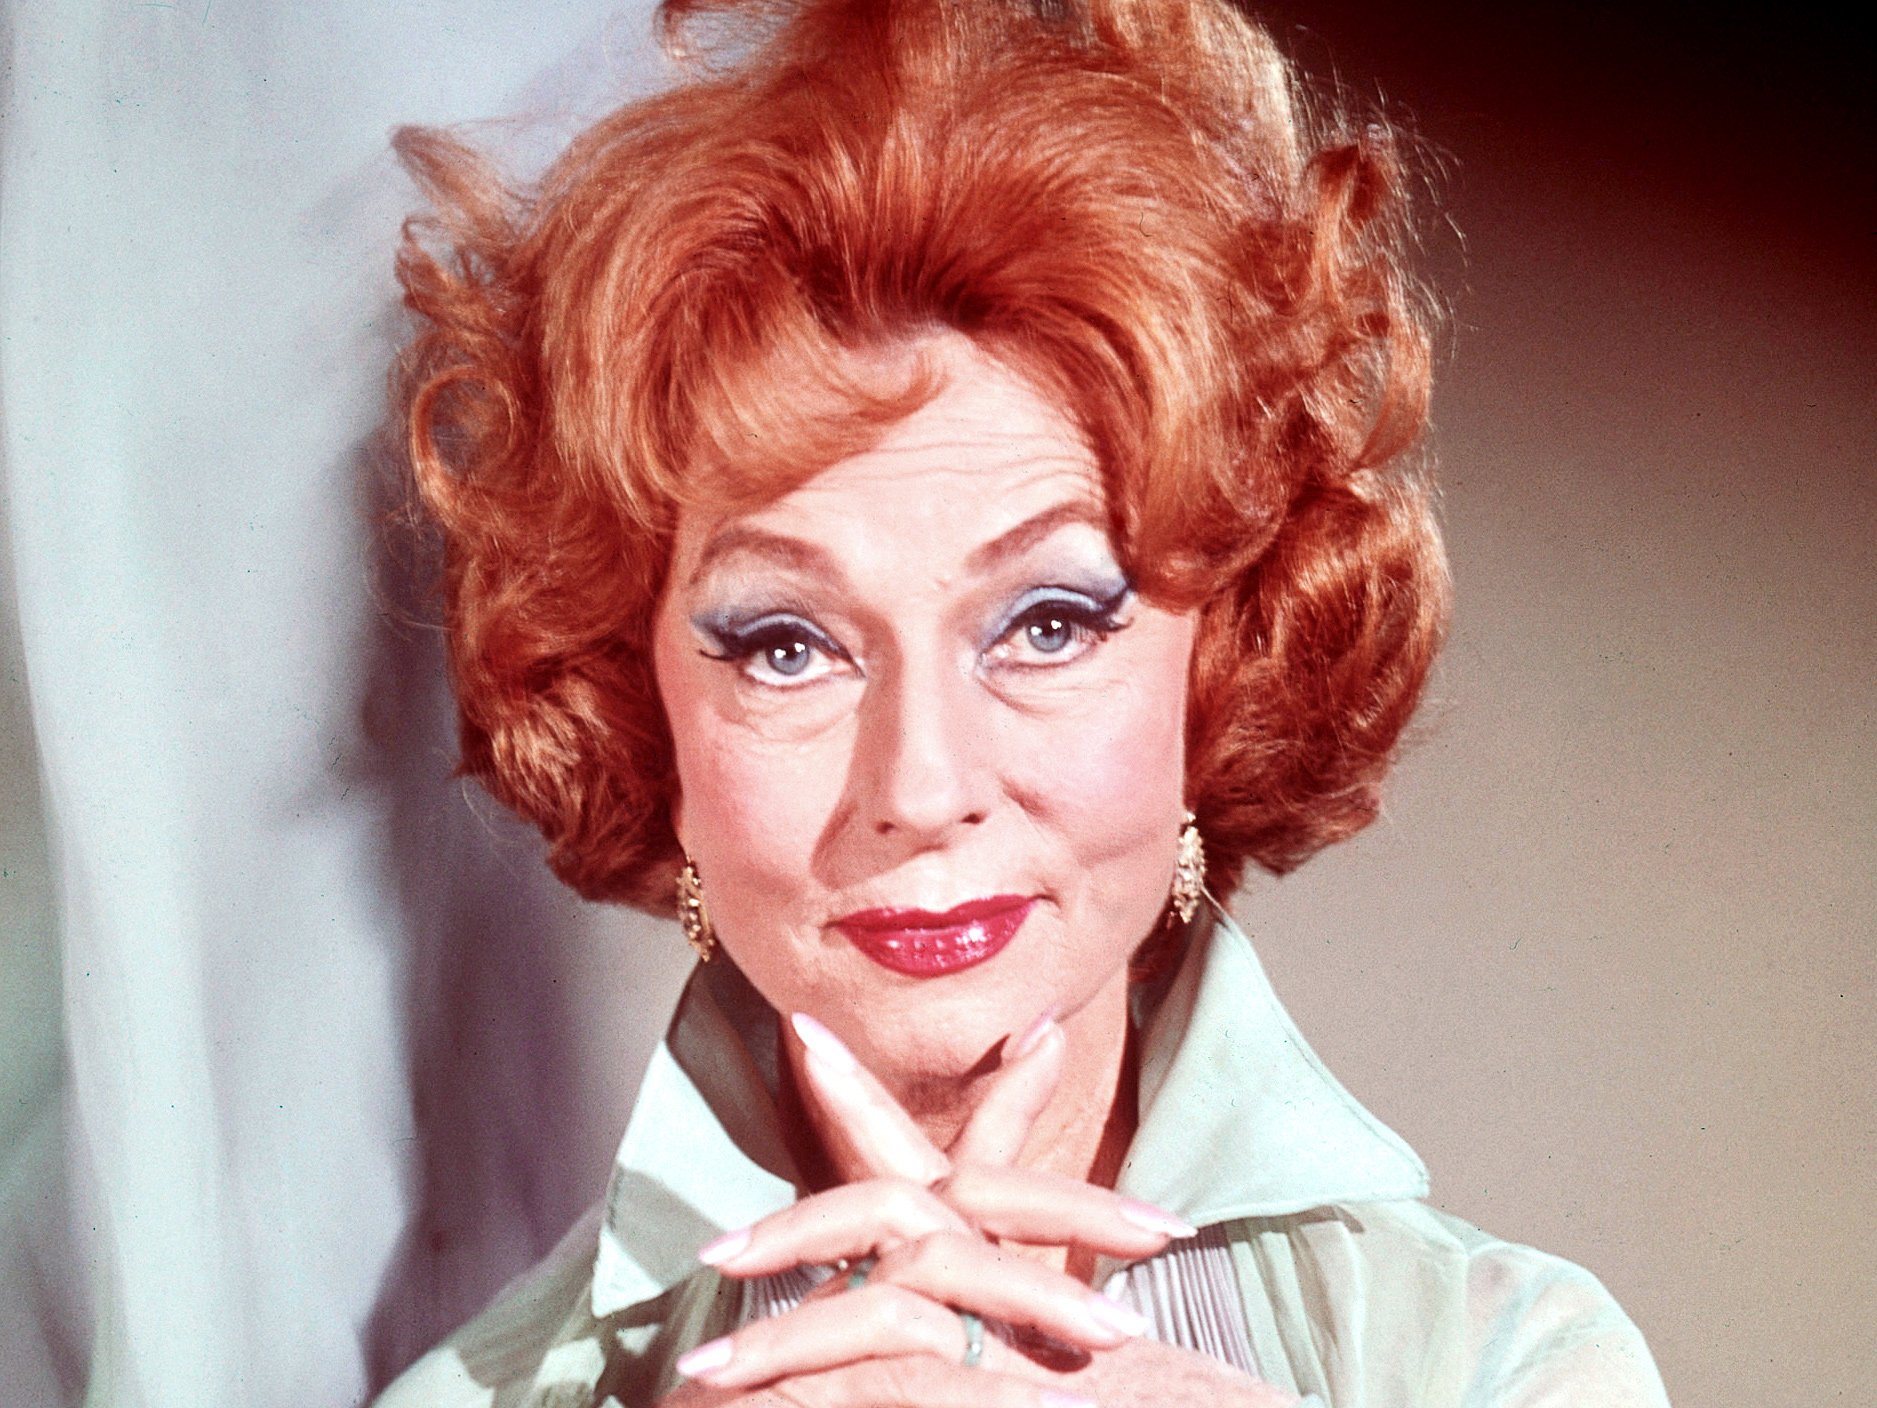 Endora from Bewitched